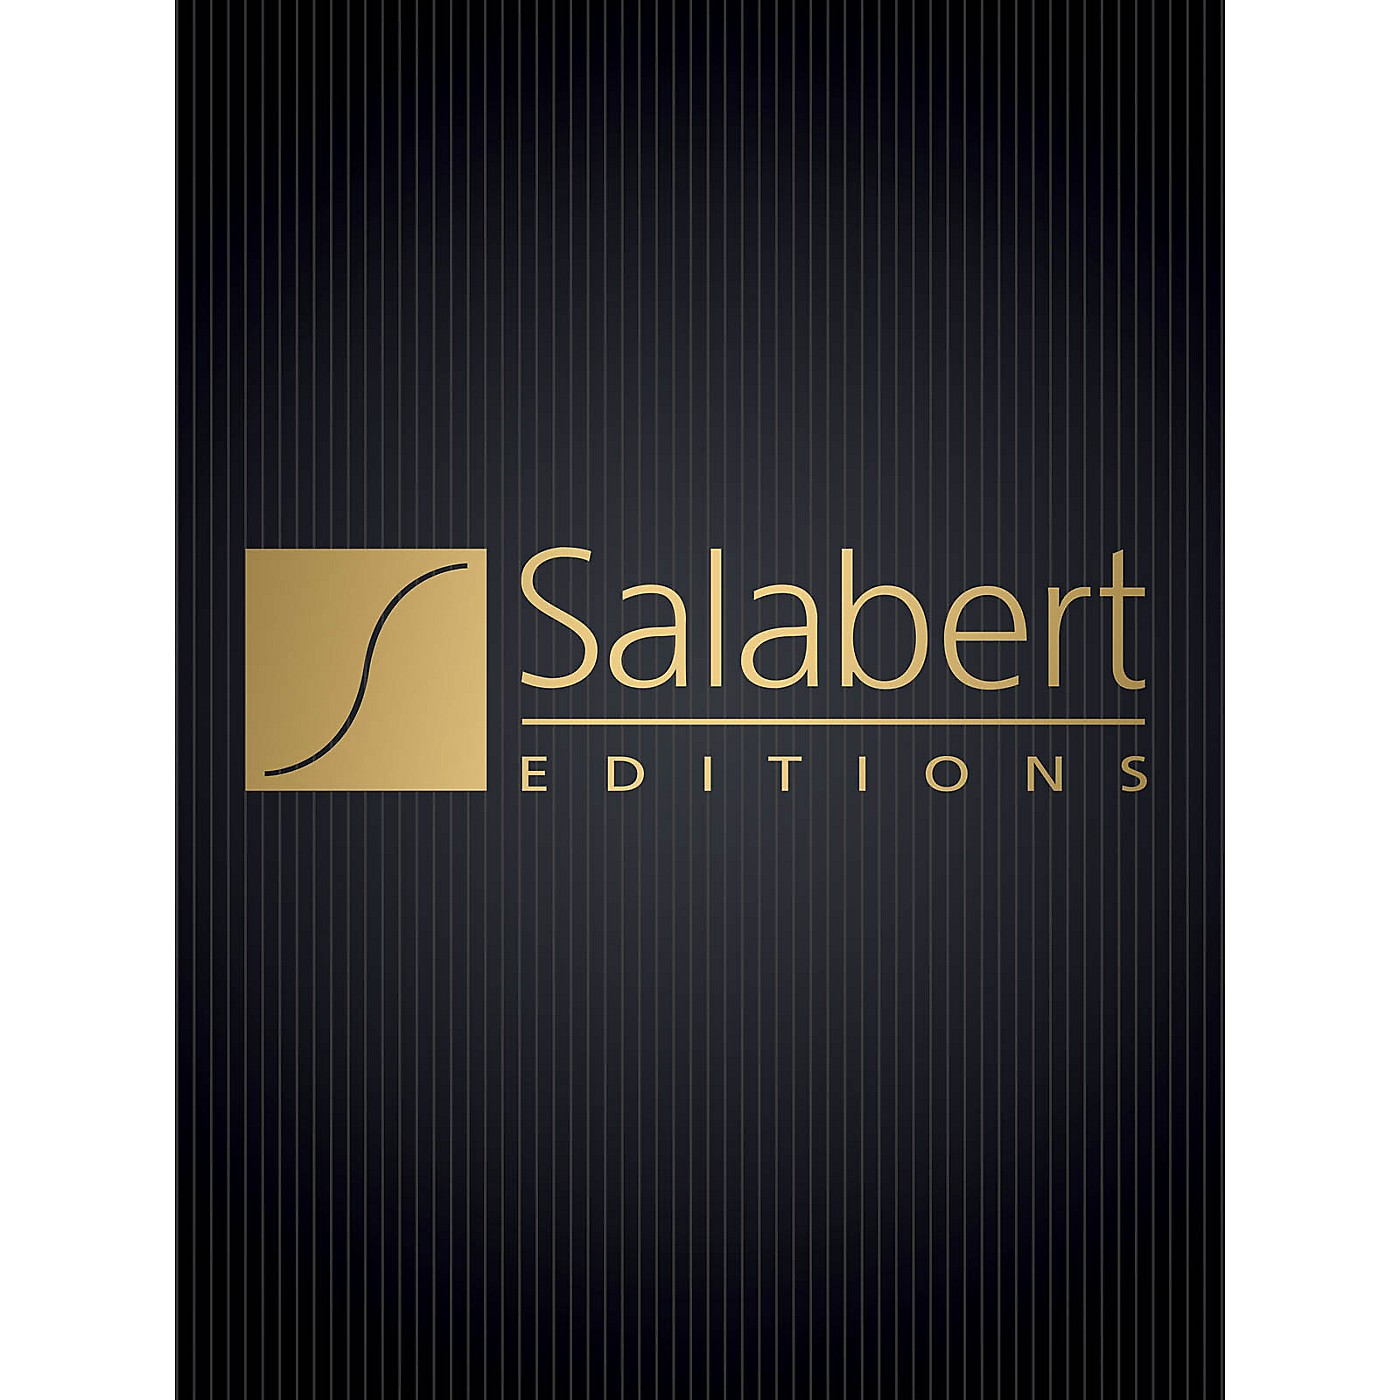 Salabert Nocturnes (Revised Edition by Robert Orledge - Piano Solo) Piano Series Softcover thumbnail